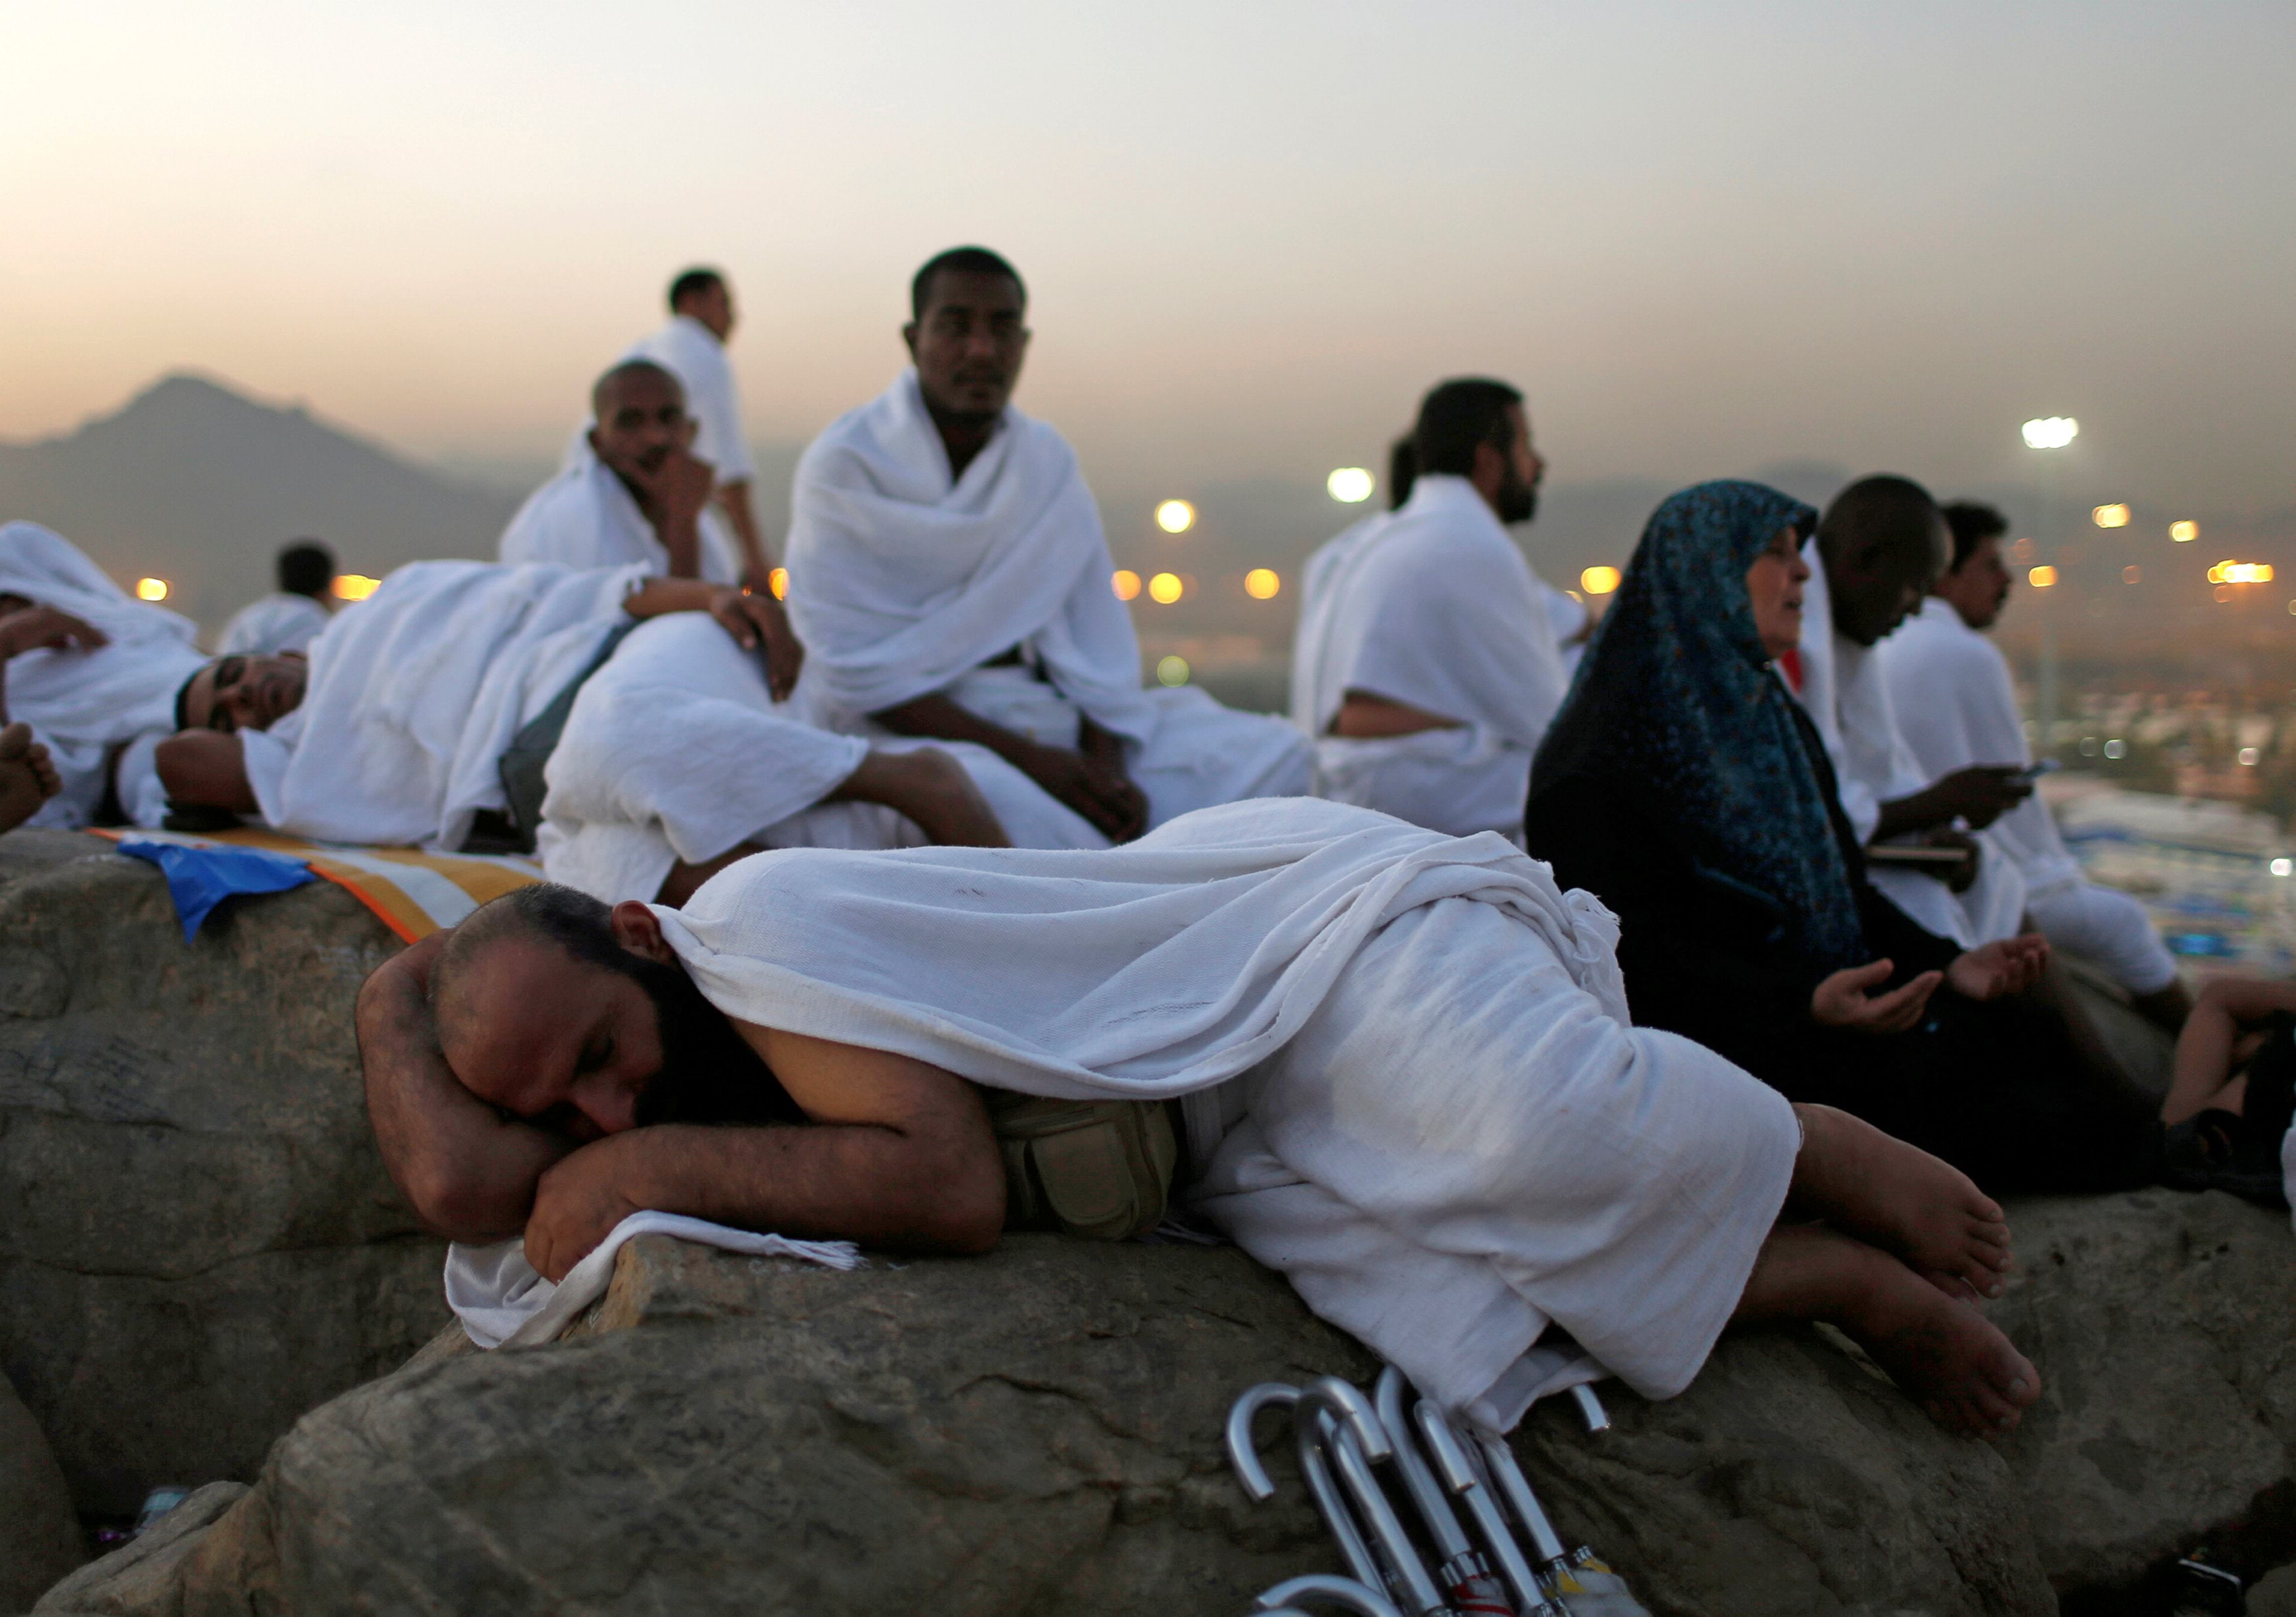 Muslim pilgrims gather on Mount Mercy on the plains of Arafat during the annual haj pilgrimage, outside the holy city of Mecca, Saudi Arabia September 11, 2016. REUTERS/Ahmed Jadallah